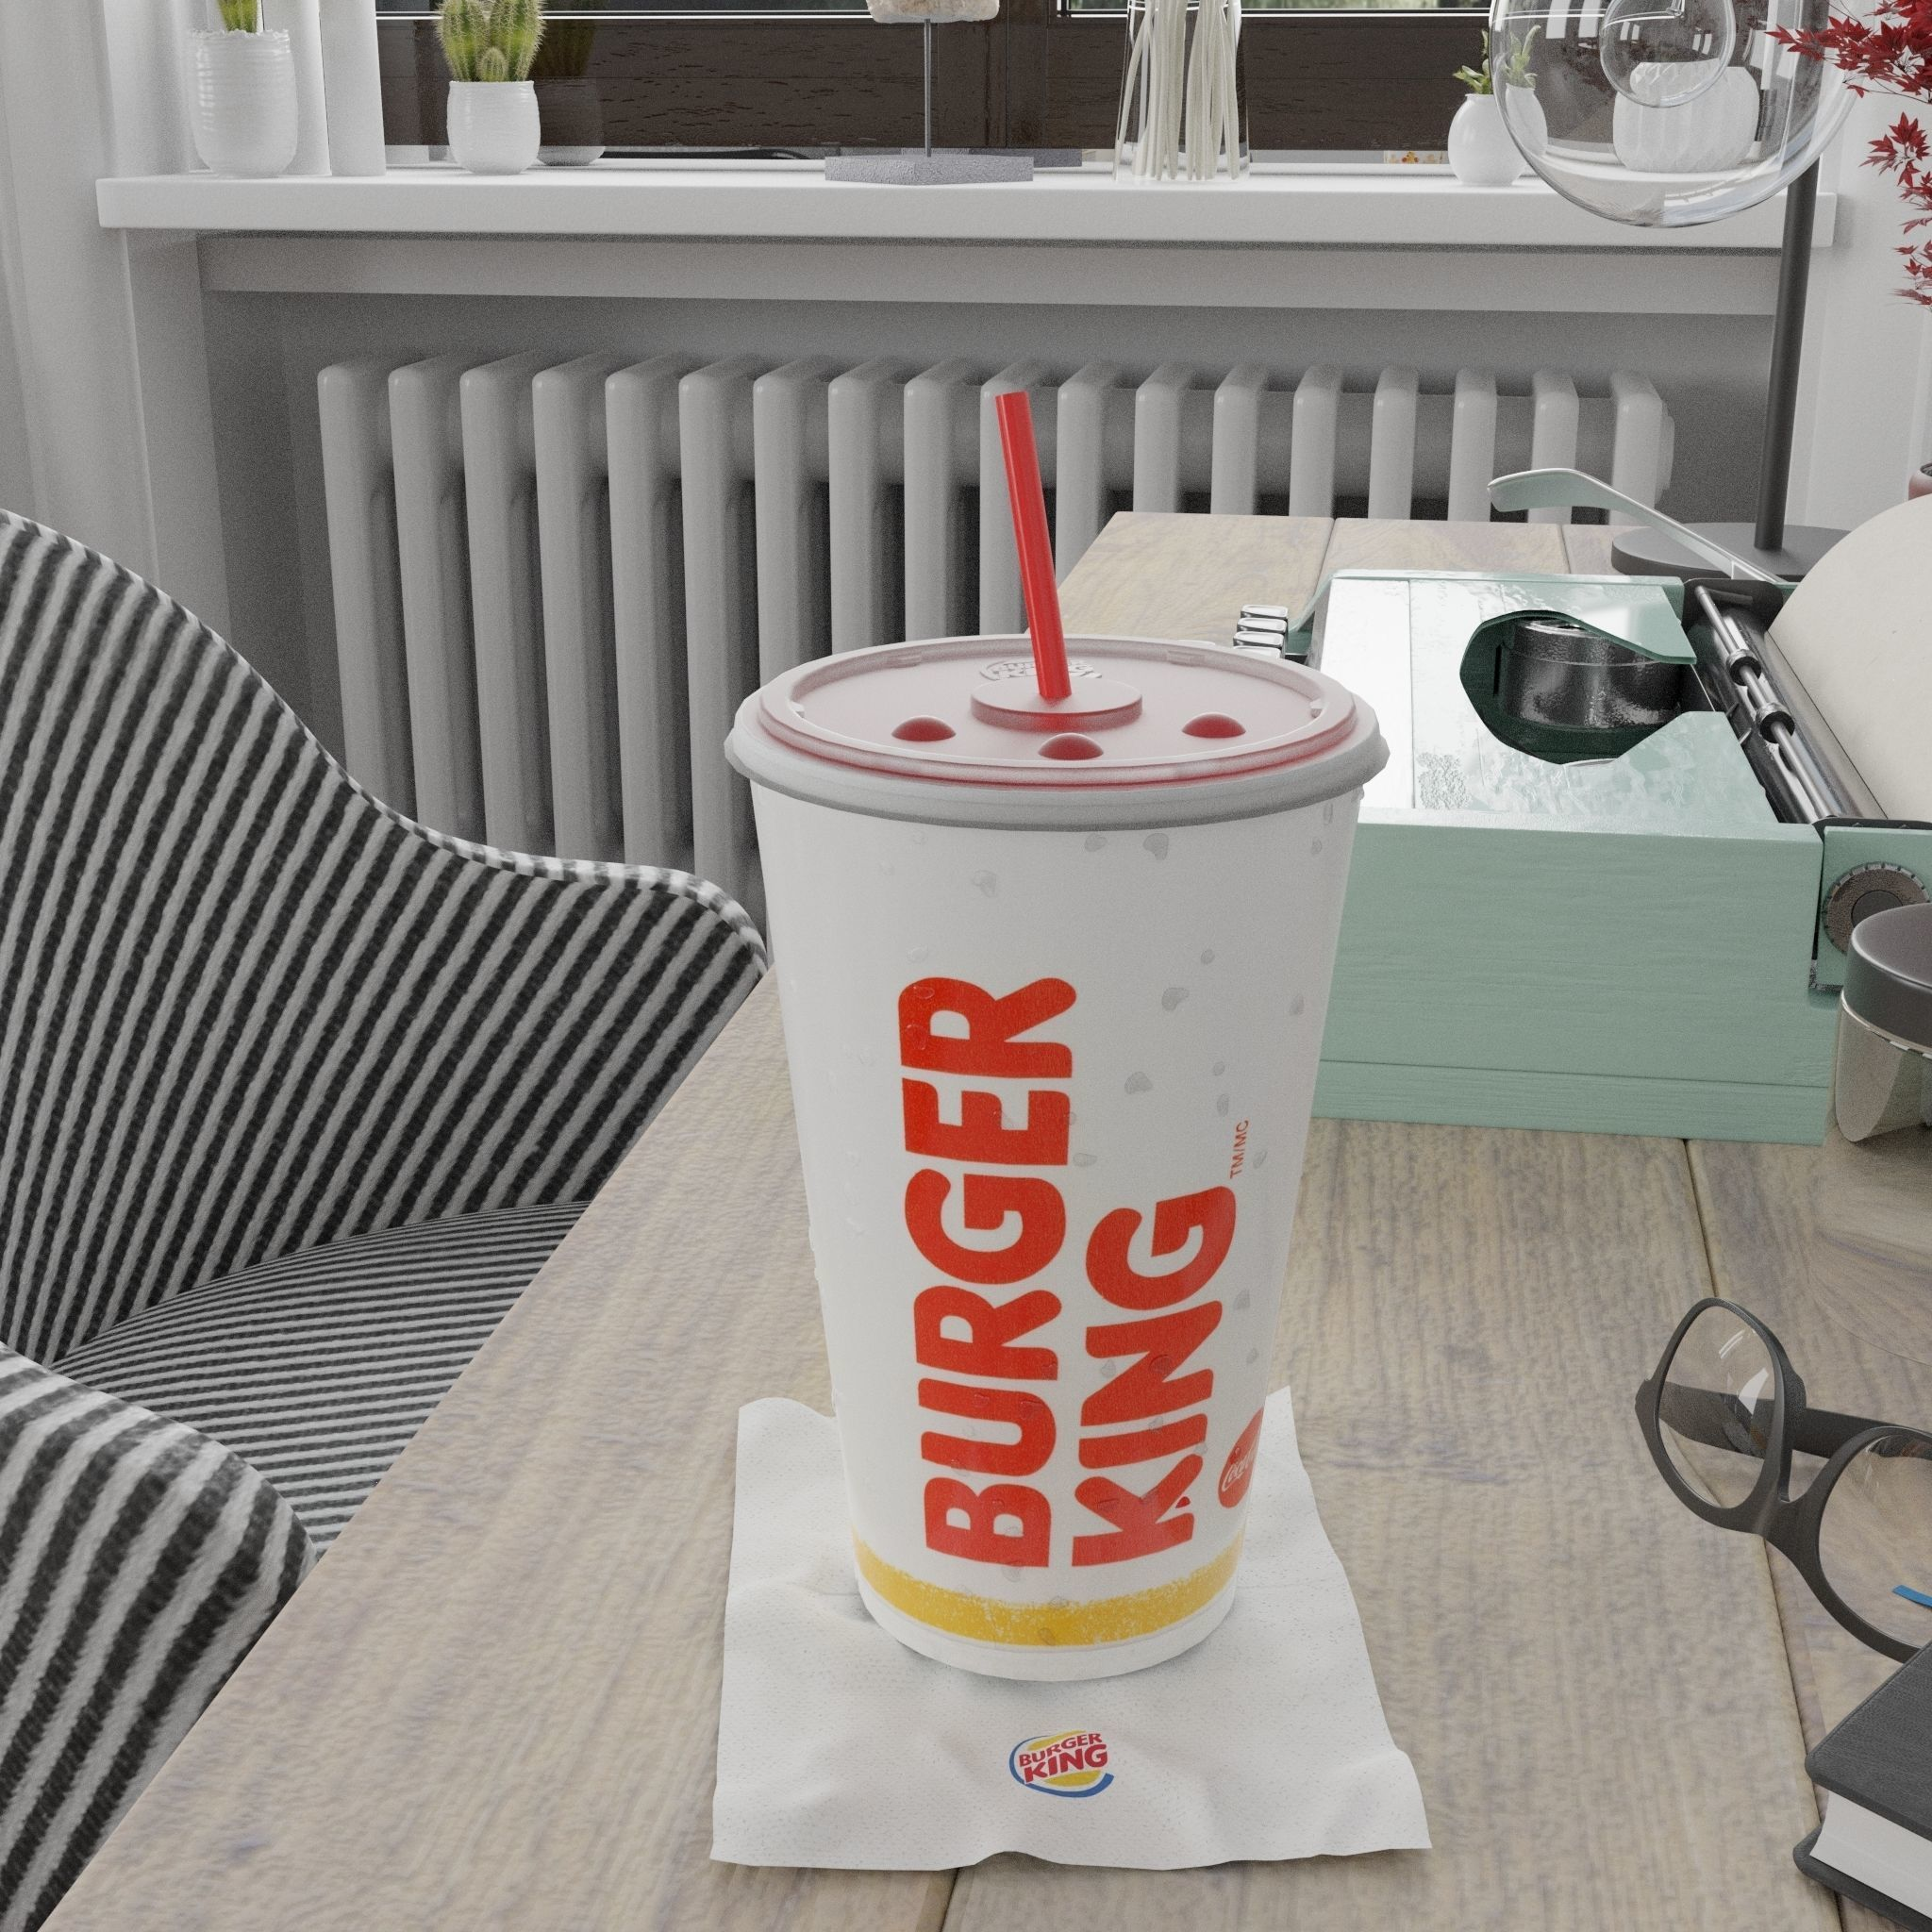 Burger King Photorealistic PBR Cup